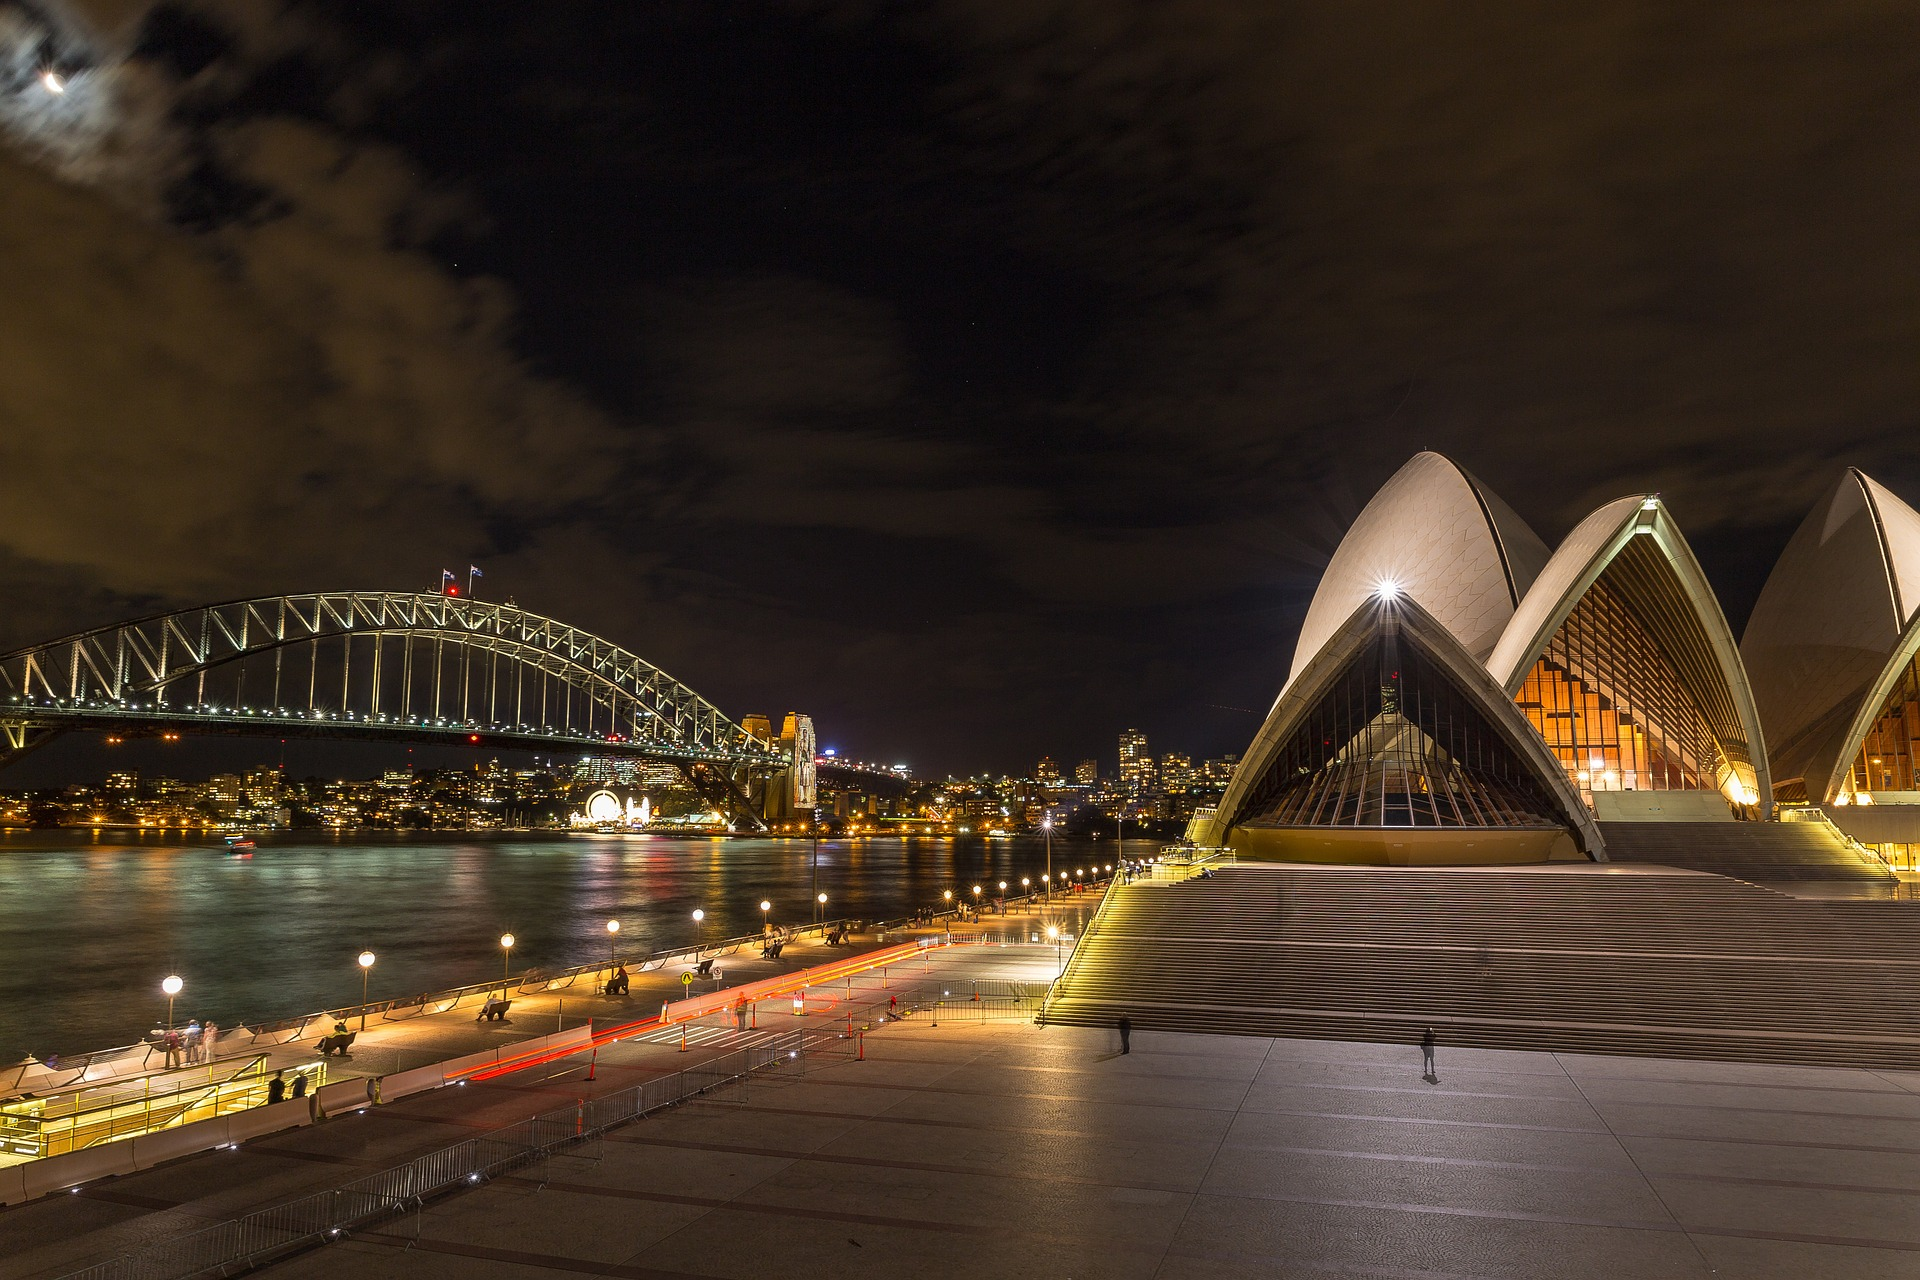 Sydney Harbour Bridge with Sysdney Opera House, Australia